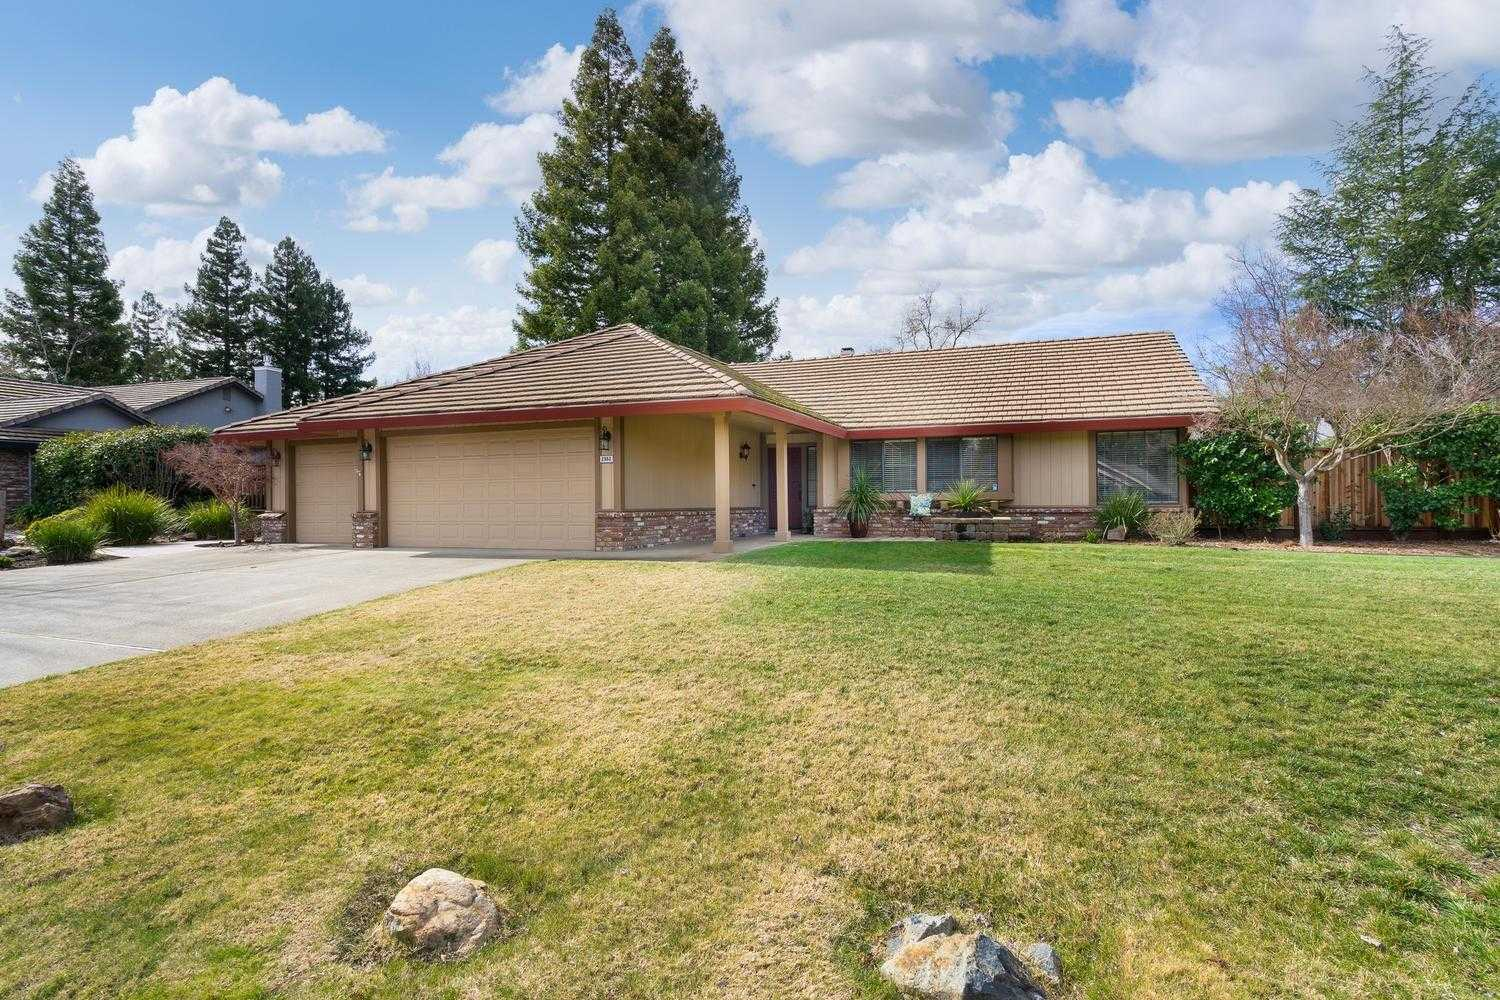 $667,000 - 4Br/3Ba -  for Sale in El Dorado Hills